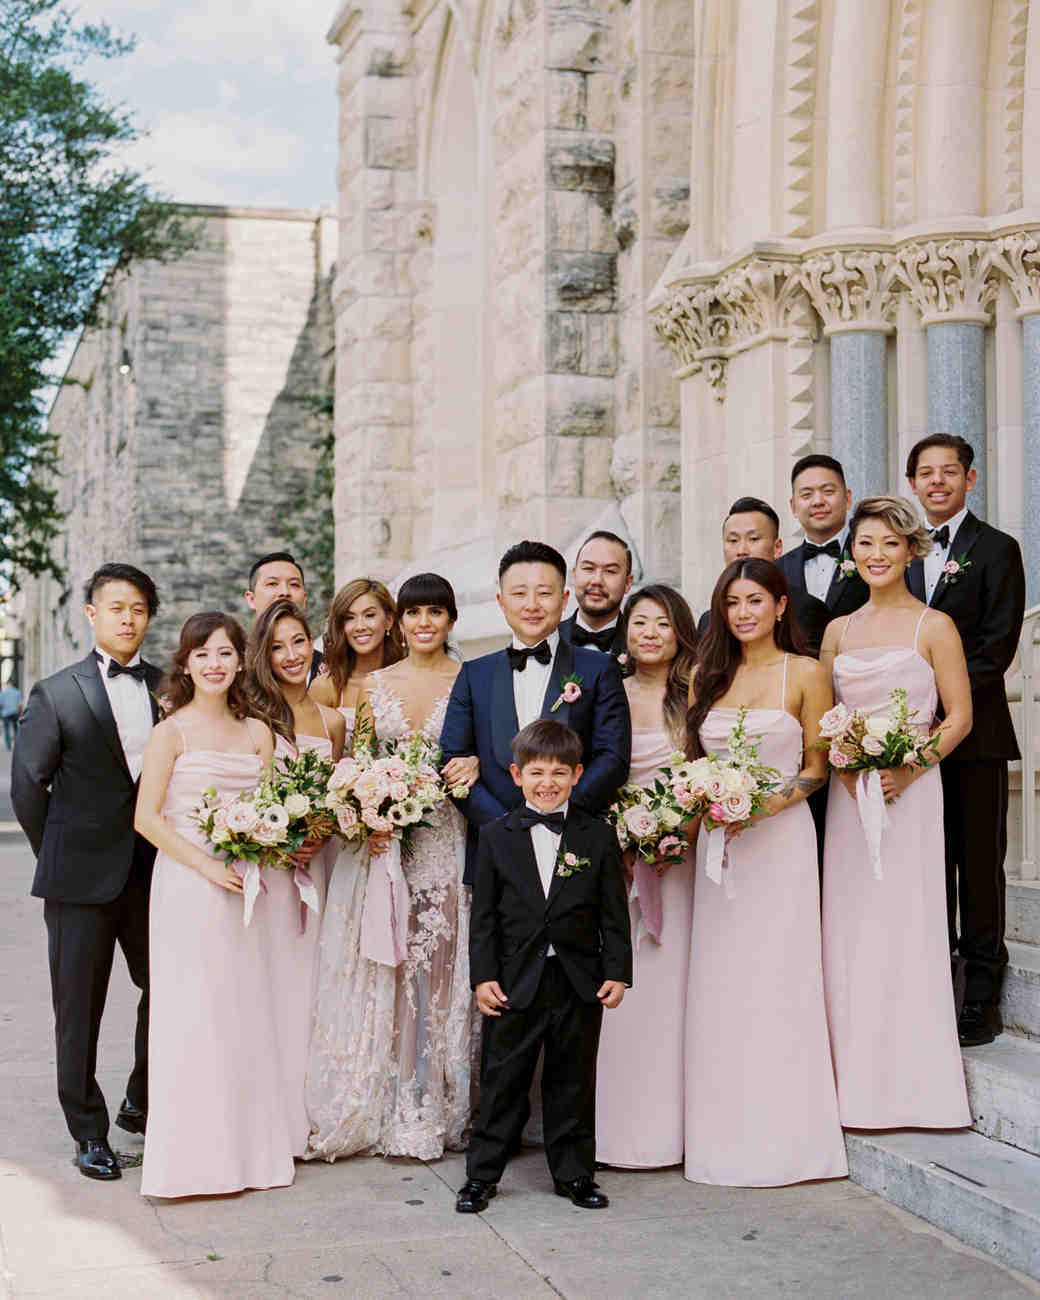 wedding party pose together outside in front of cathedral